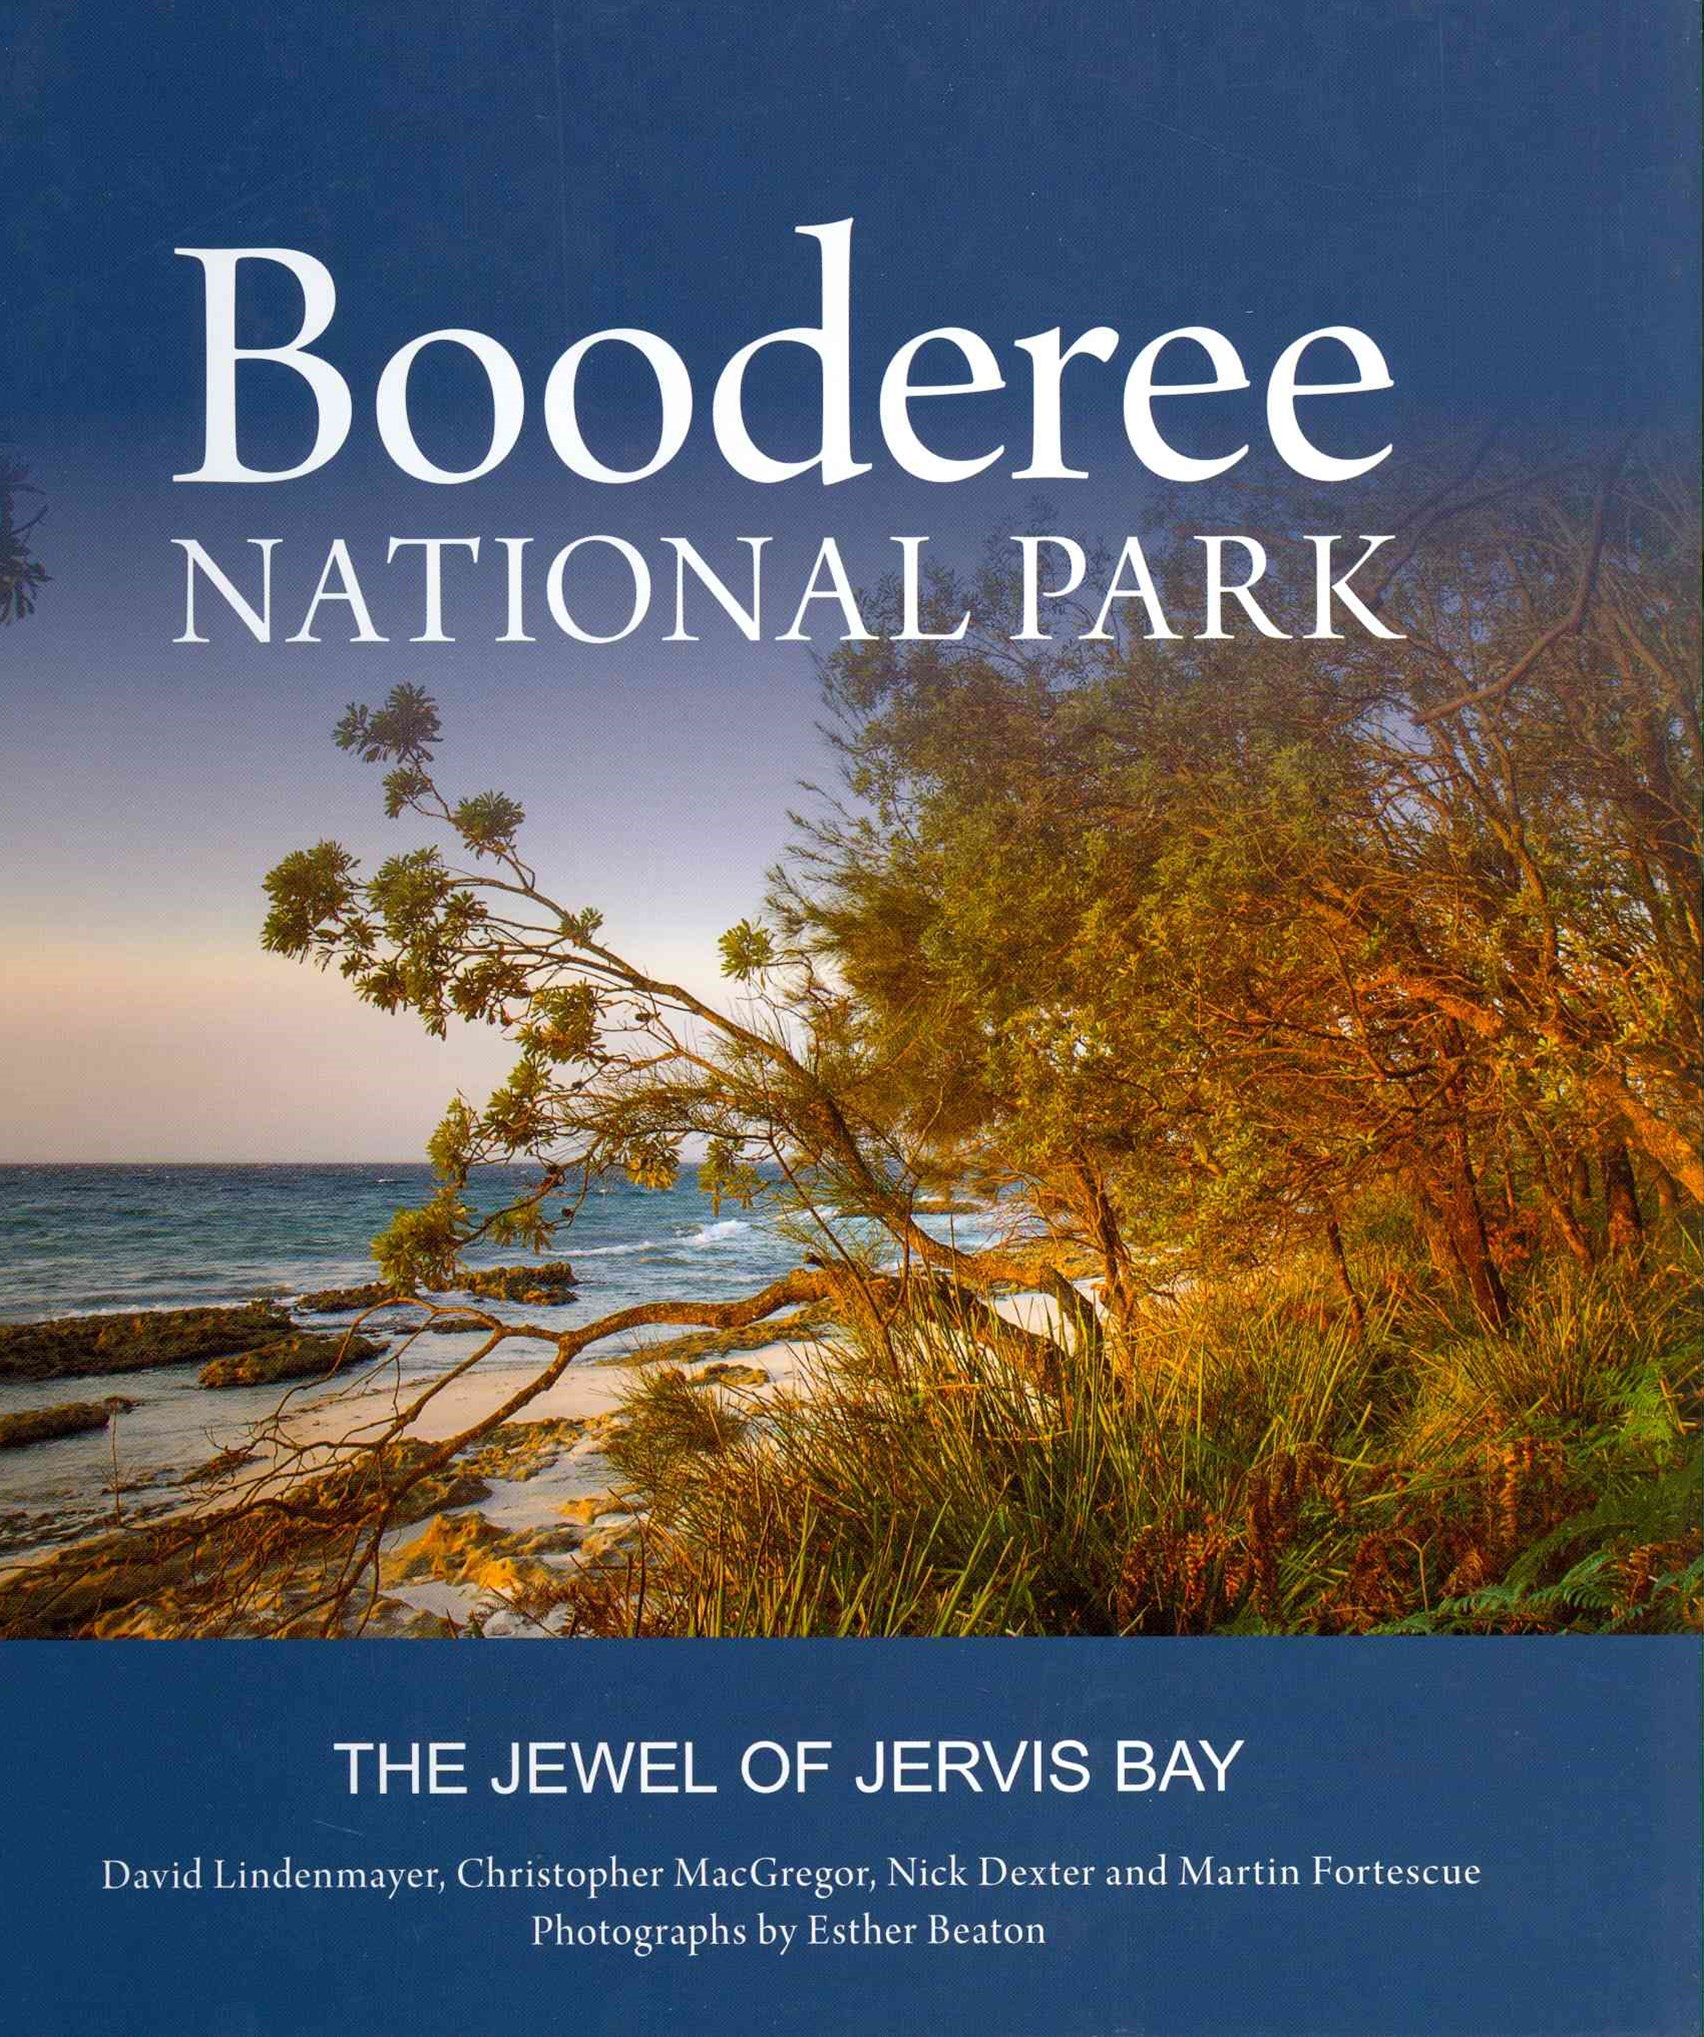 Booderee National Park